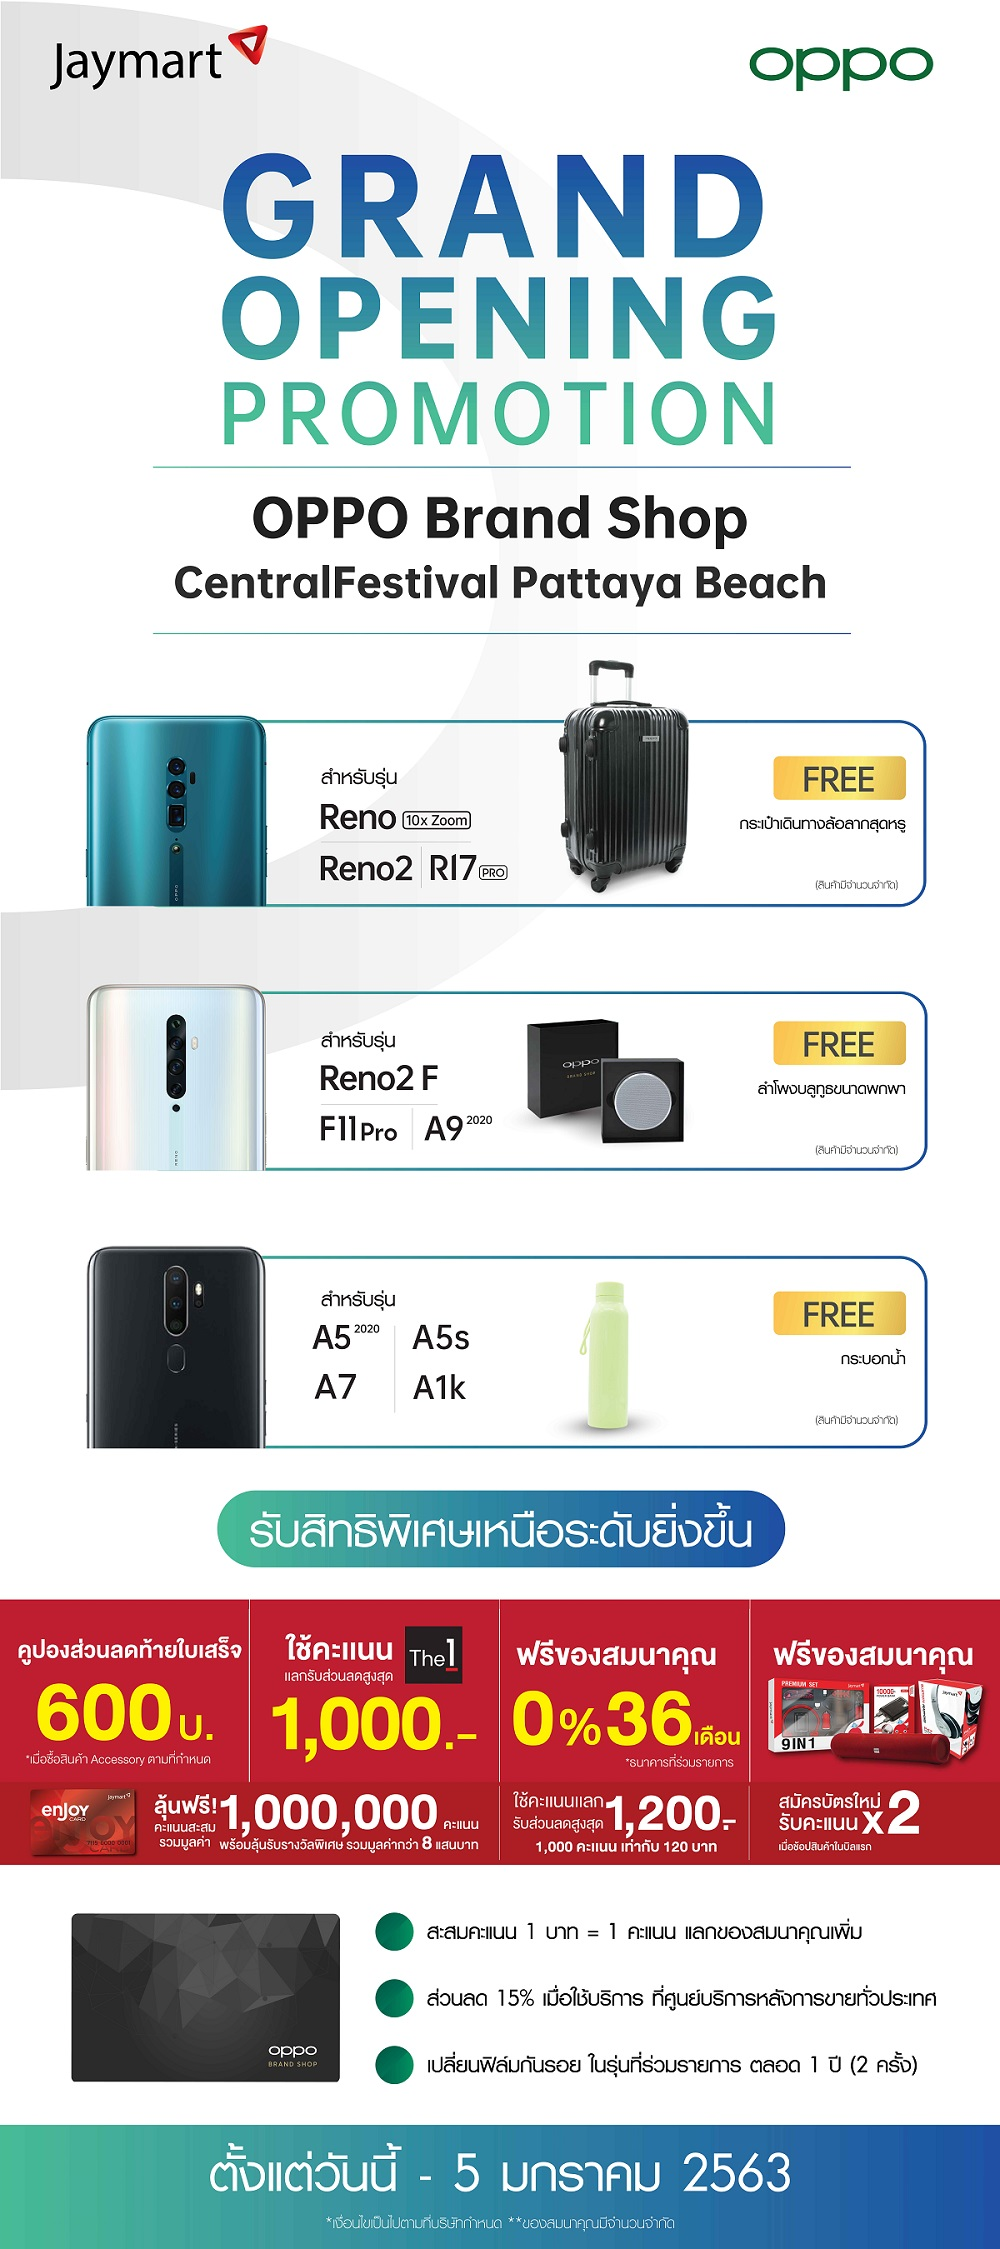 OPPO Brandshop at Central festival Pattaya Beach Promotion